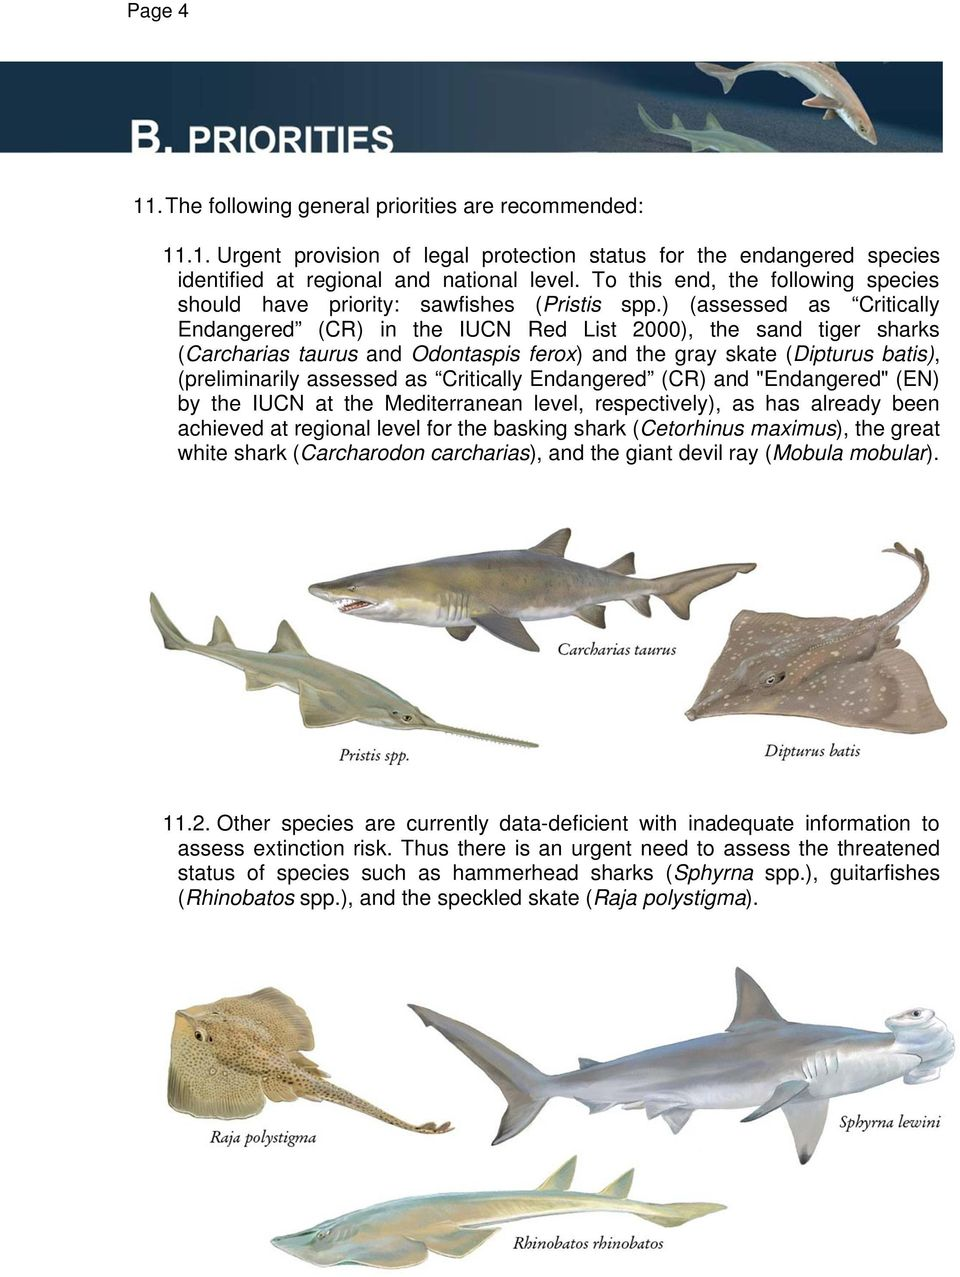 ) (assessed as Critically Endangered (CR) in the IUCN Red List 2000), the sand tiger sharks (Carcharias taurus and Odontaspis ferox) and the gray skate (Dipturus batis), (preliminarily assessed as